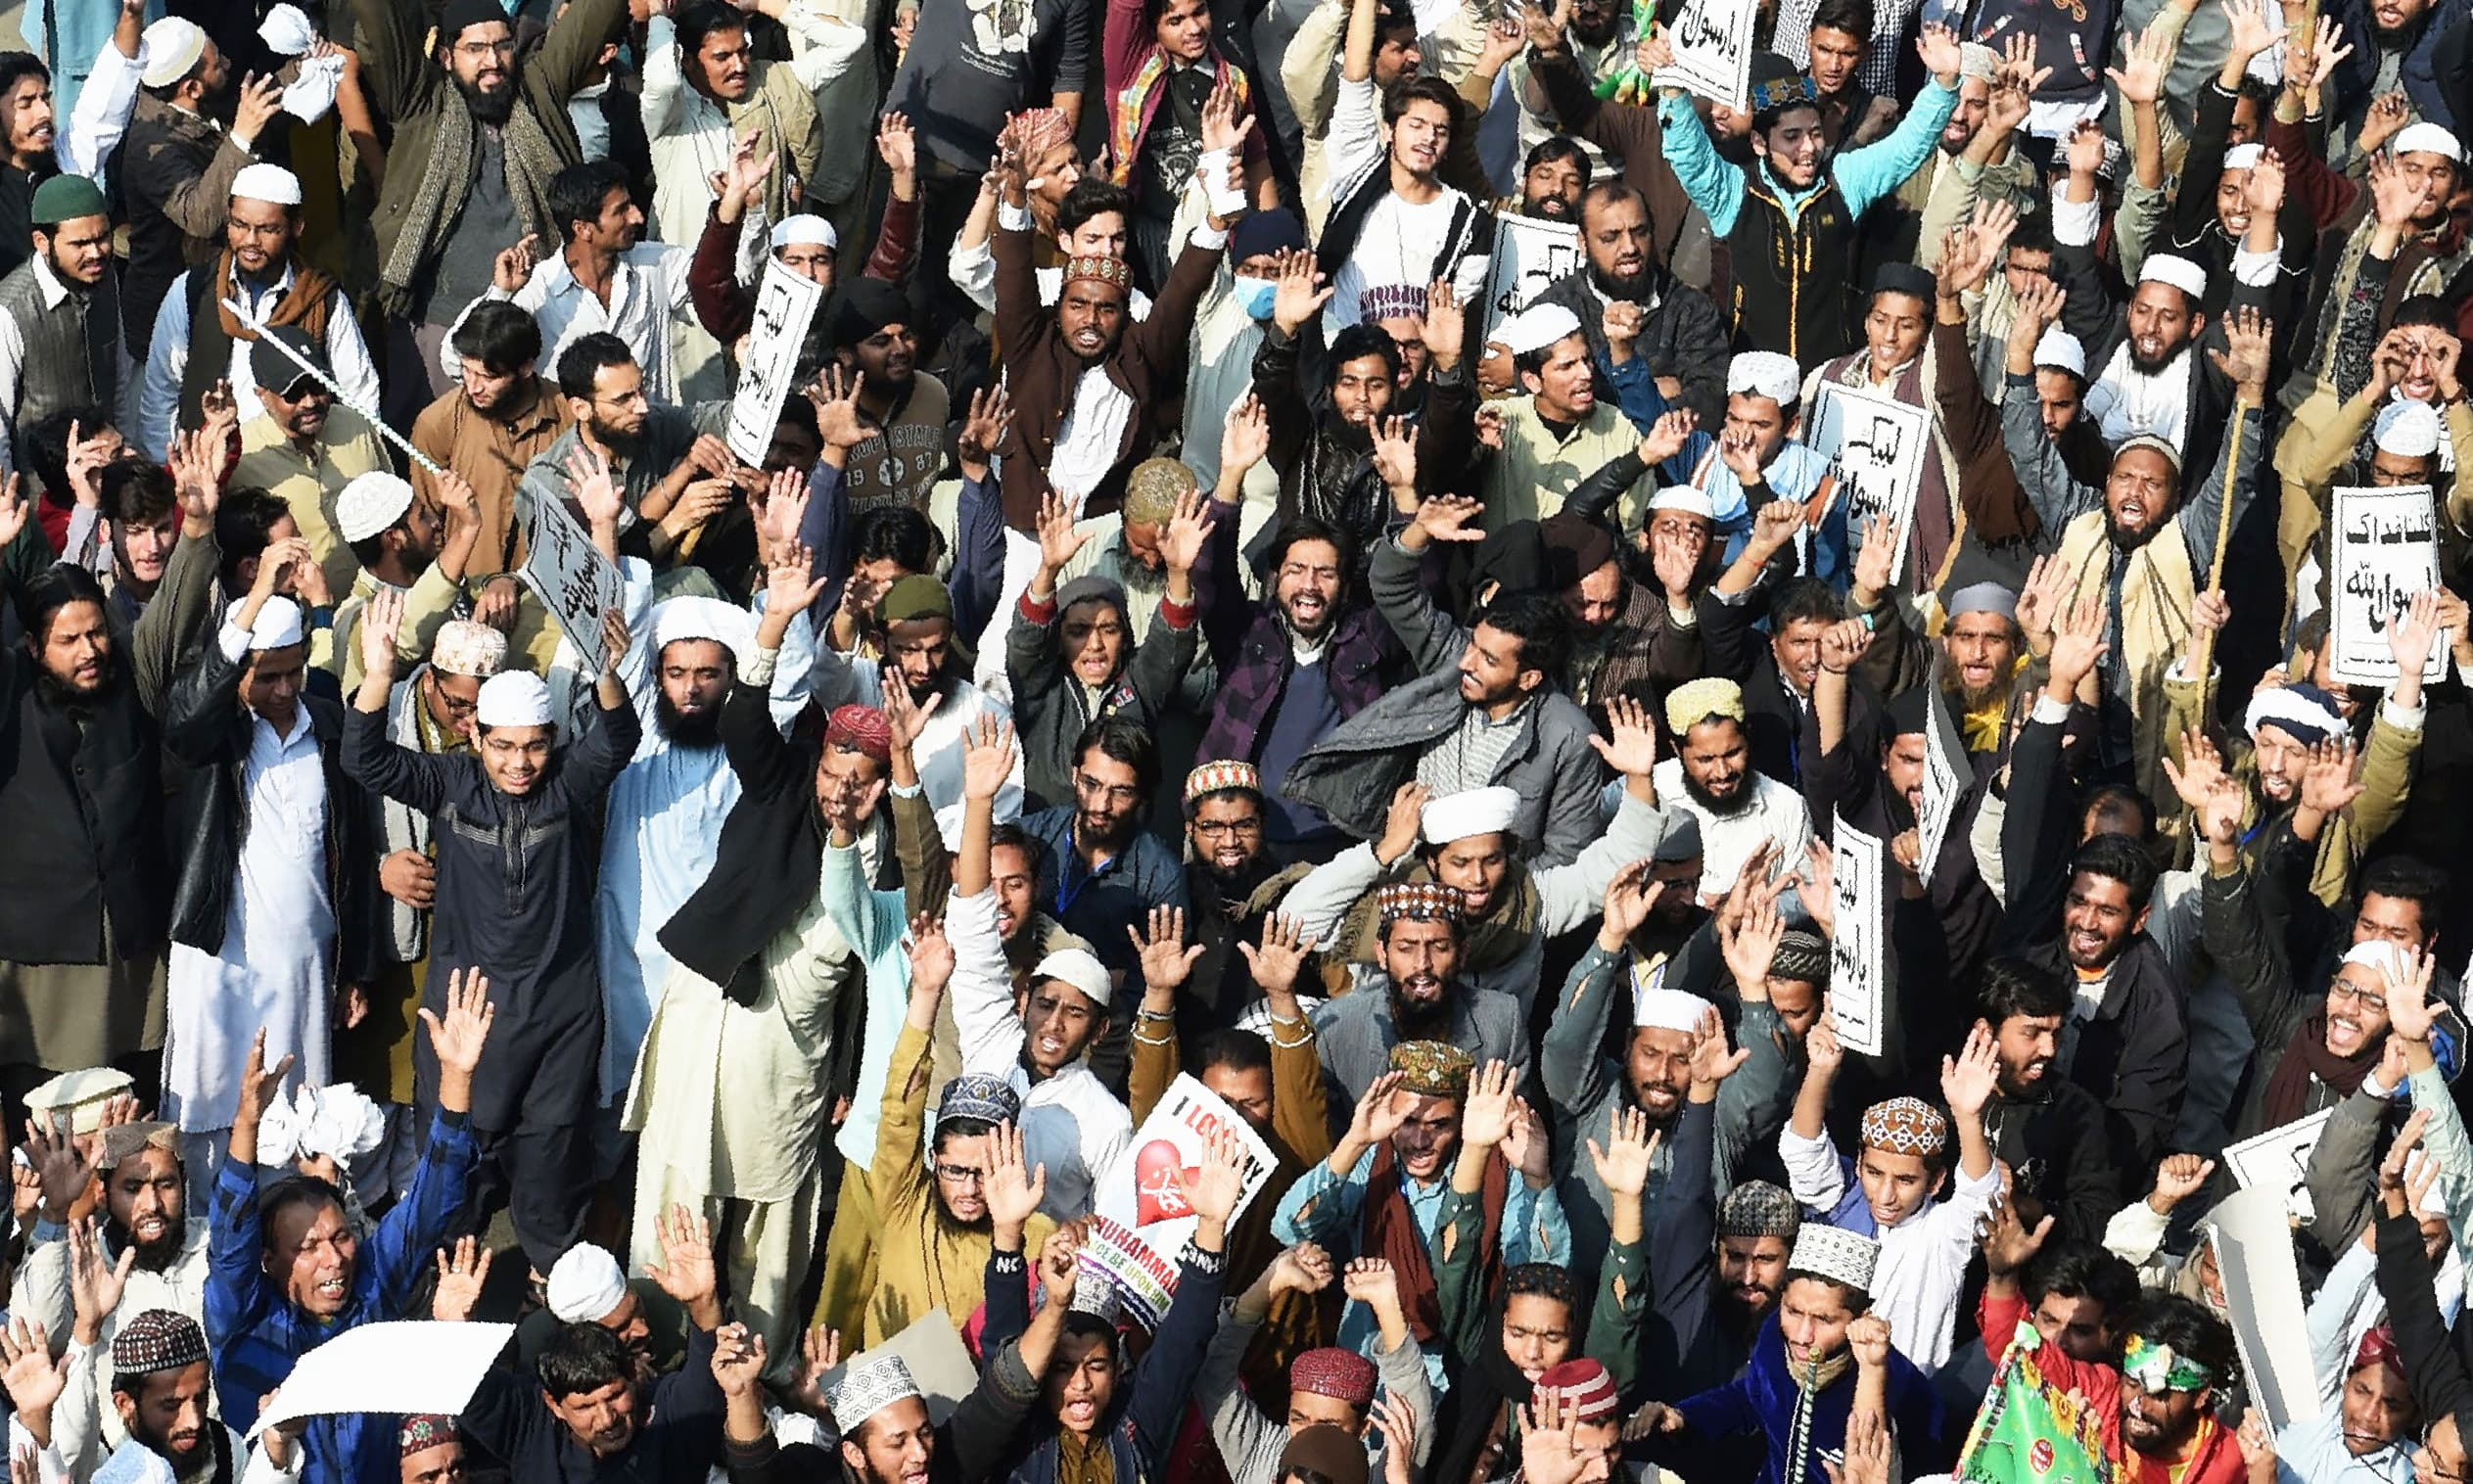 Religious activists shout slogans against the govt during a protest in Lahore. —AFP